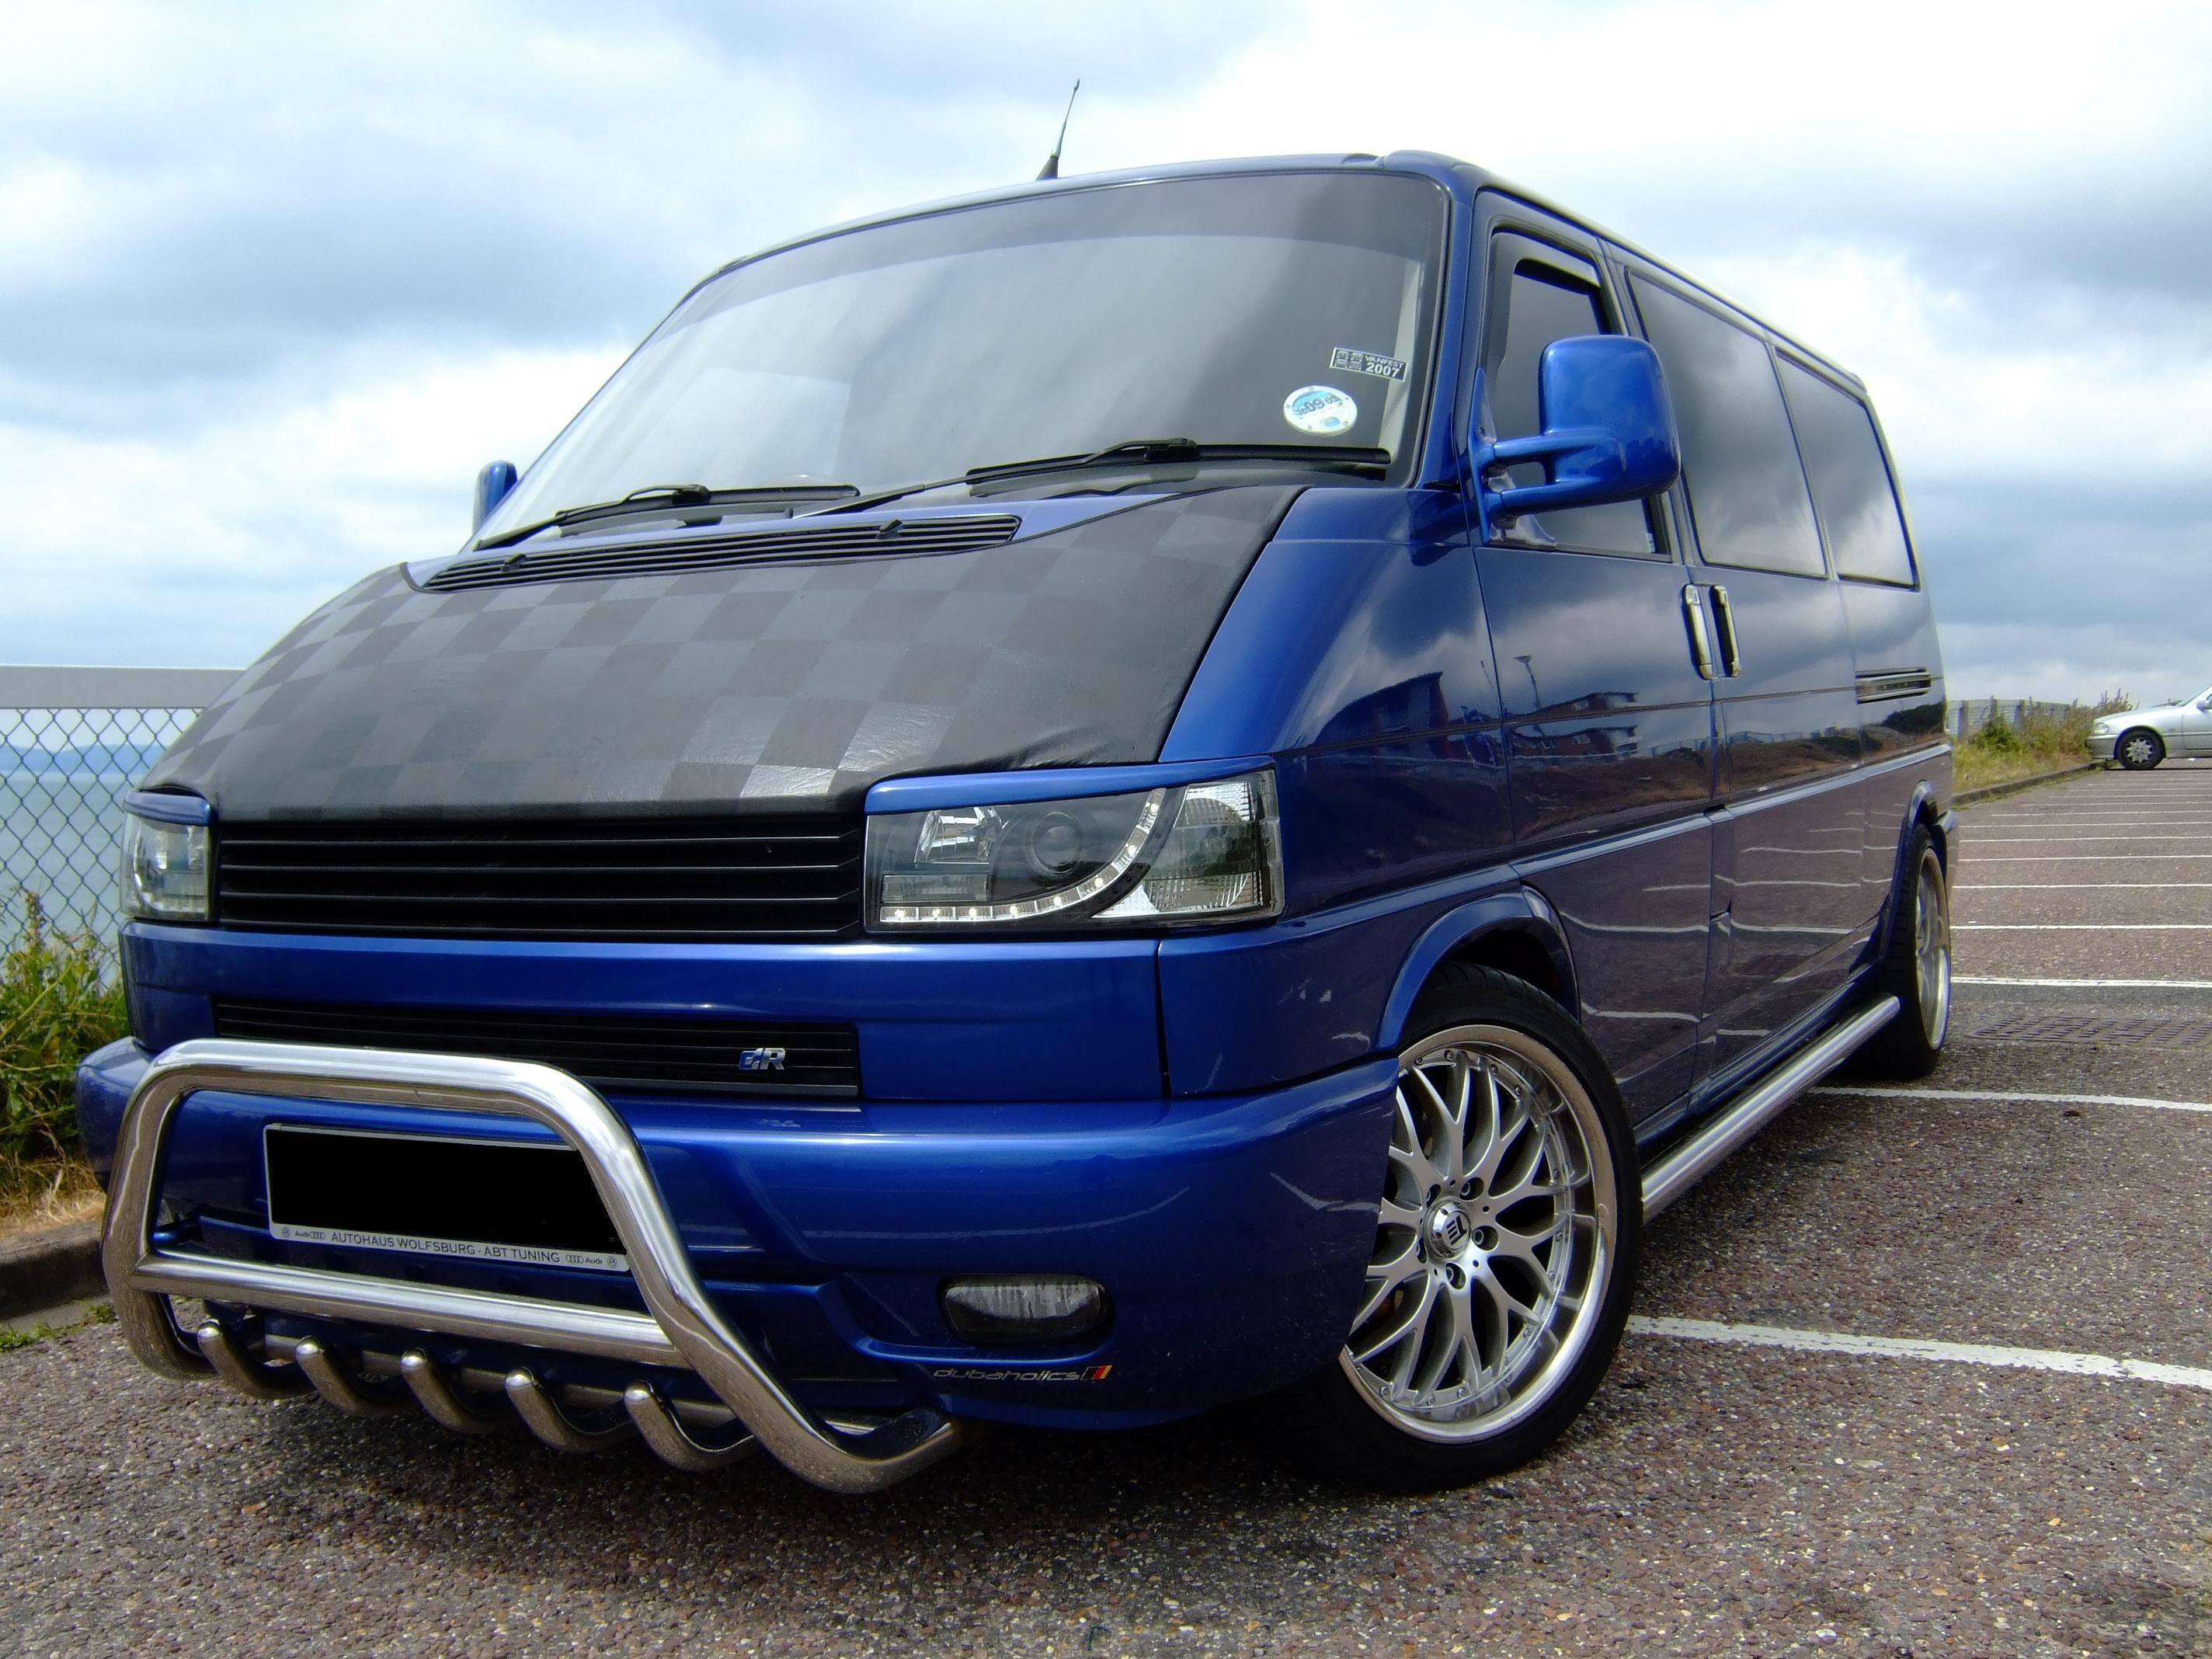 2000 Volkswagen T4 transporter – pictures, information and specs - Auto-Database.com